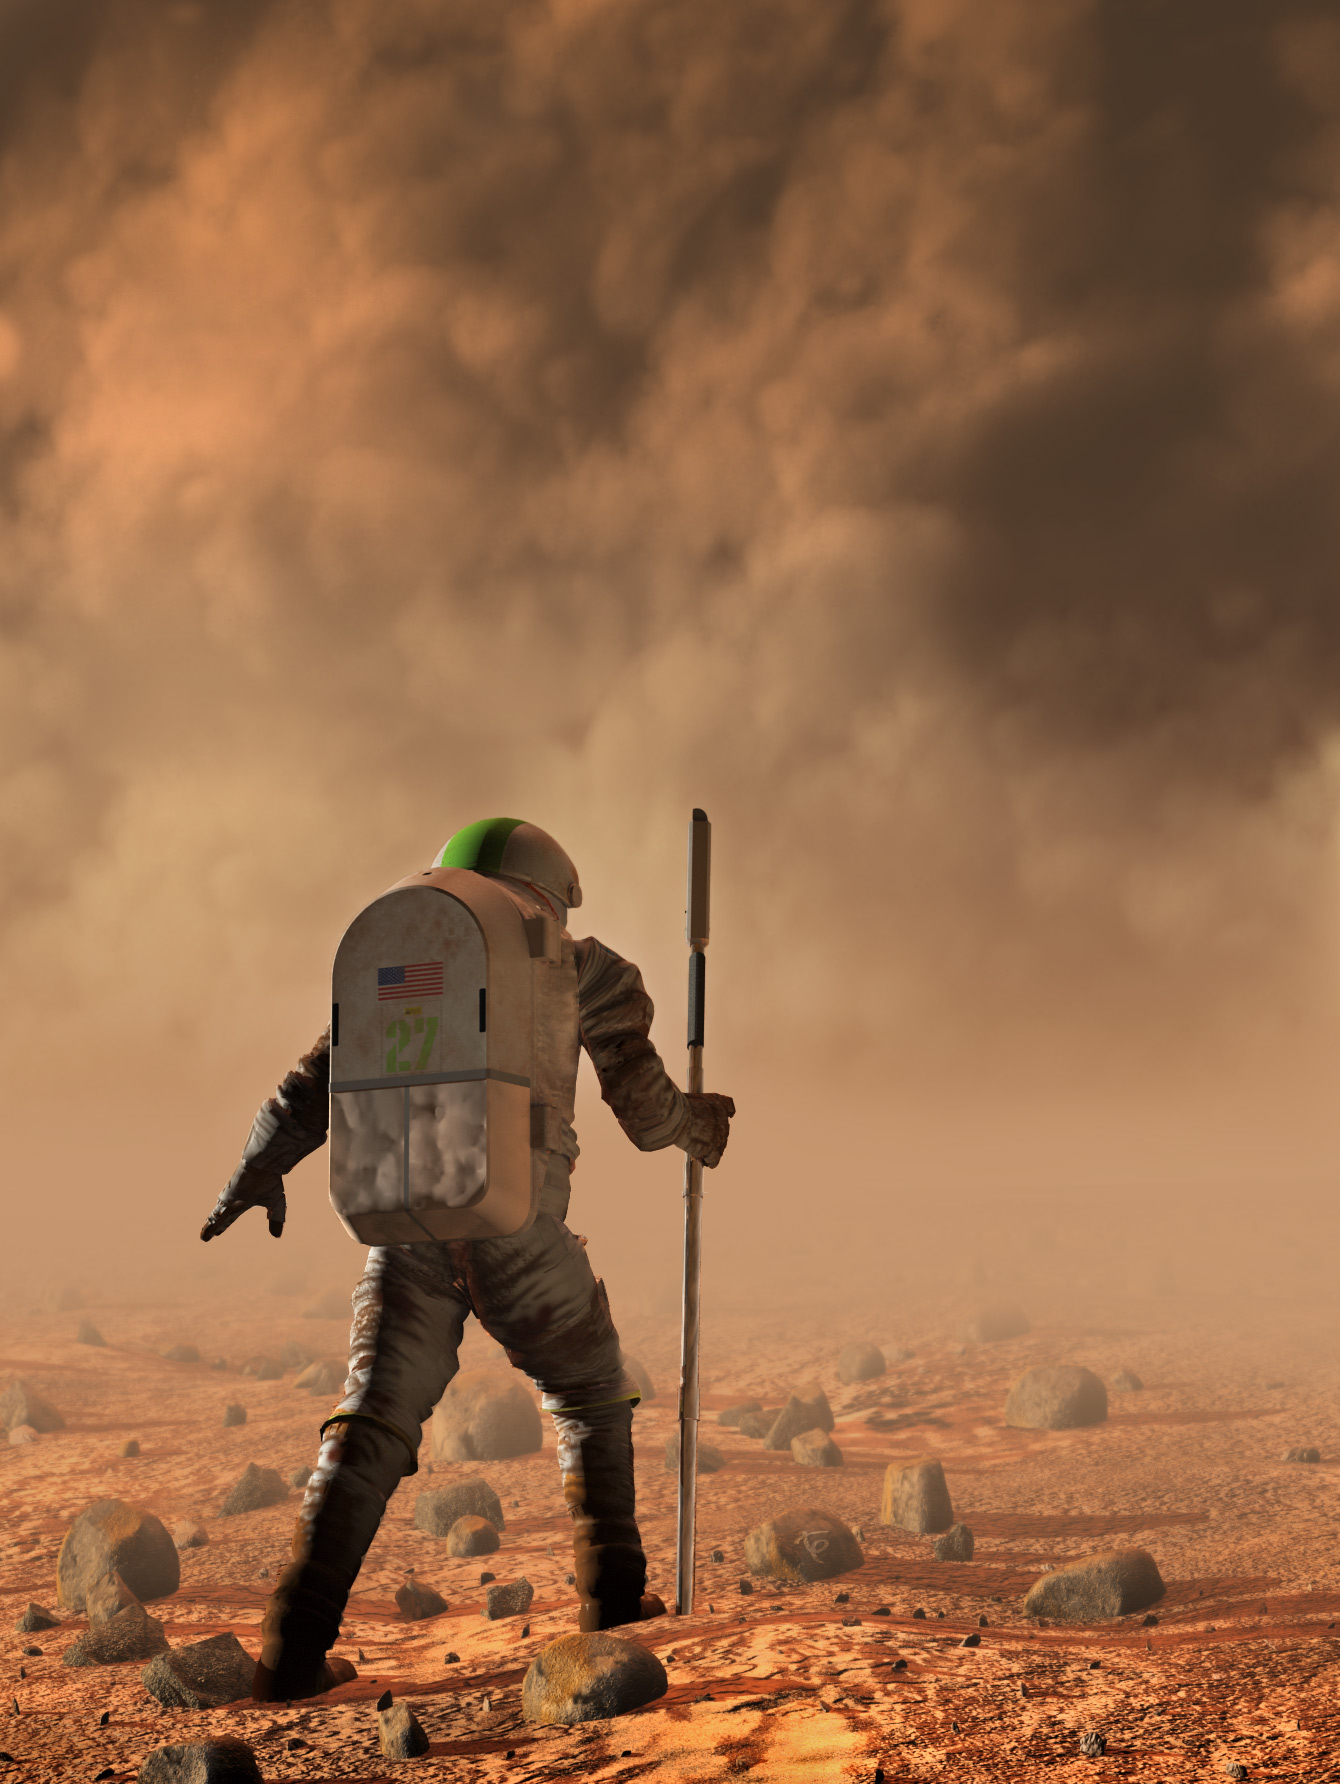 "A lone Astronaut confronts the fierce winds and fine sands of a major Martian dust storm. I seem to return to this theme regularly- I have no idea why, other than its a very visual embodyment of the ""man against nature"" theme present in all tales of exploration....  The landscape and astronaut were modeled and rendered in Lightwave 7.5. The sandstorm and depth of field effect were executed in Photoshop CS. Thanks for looking!"